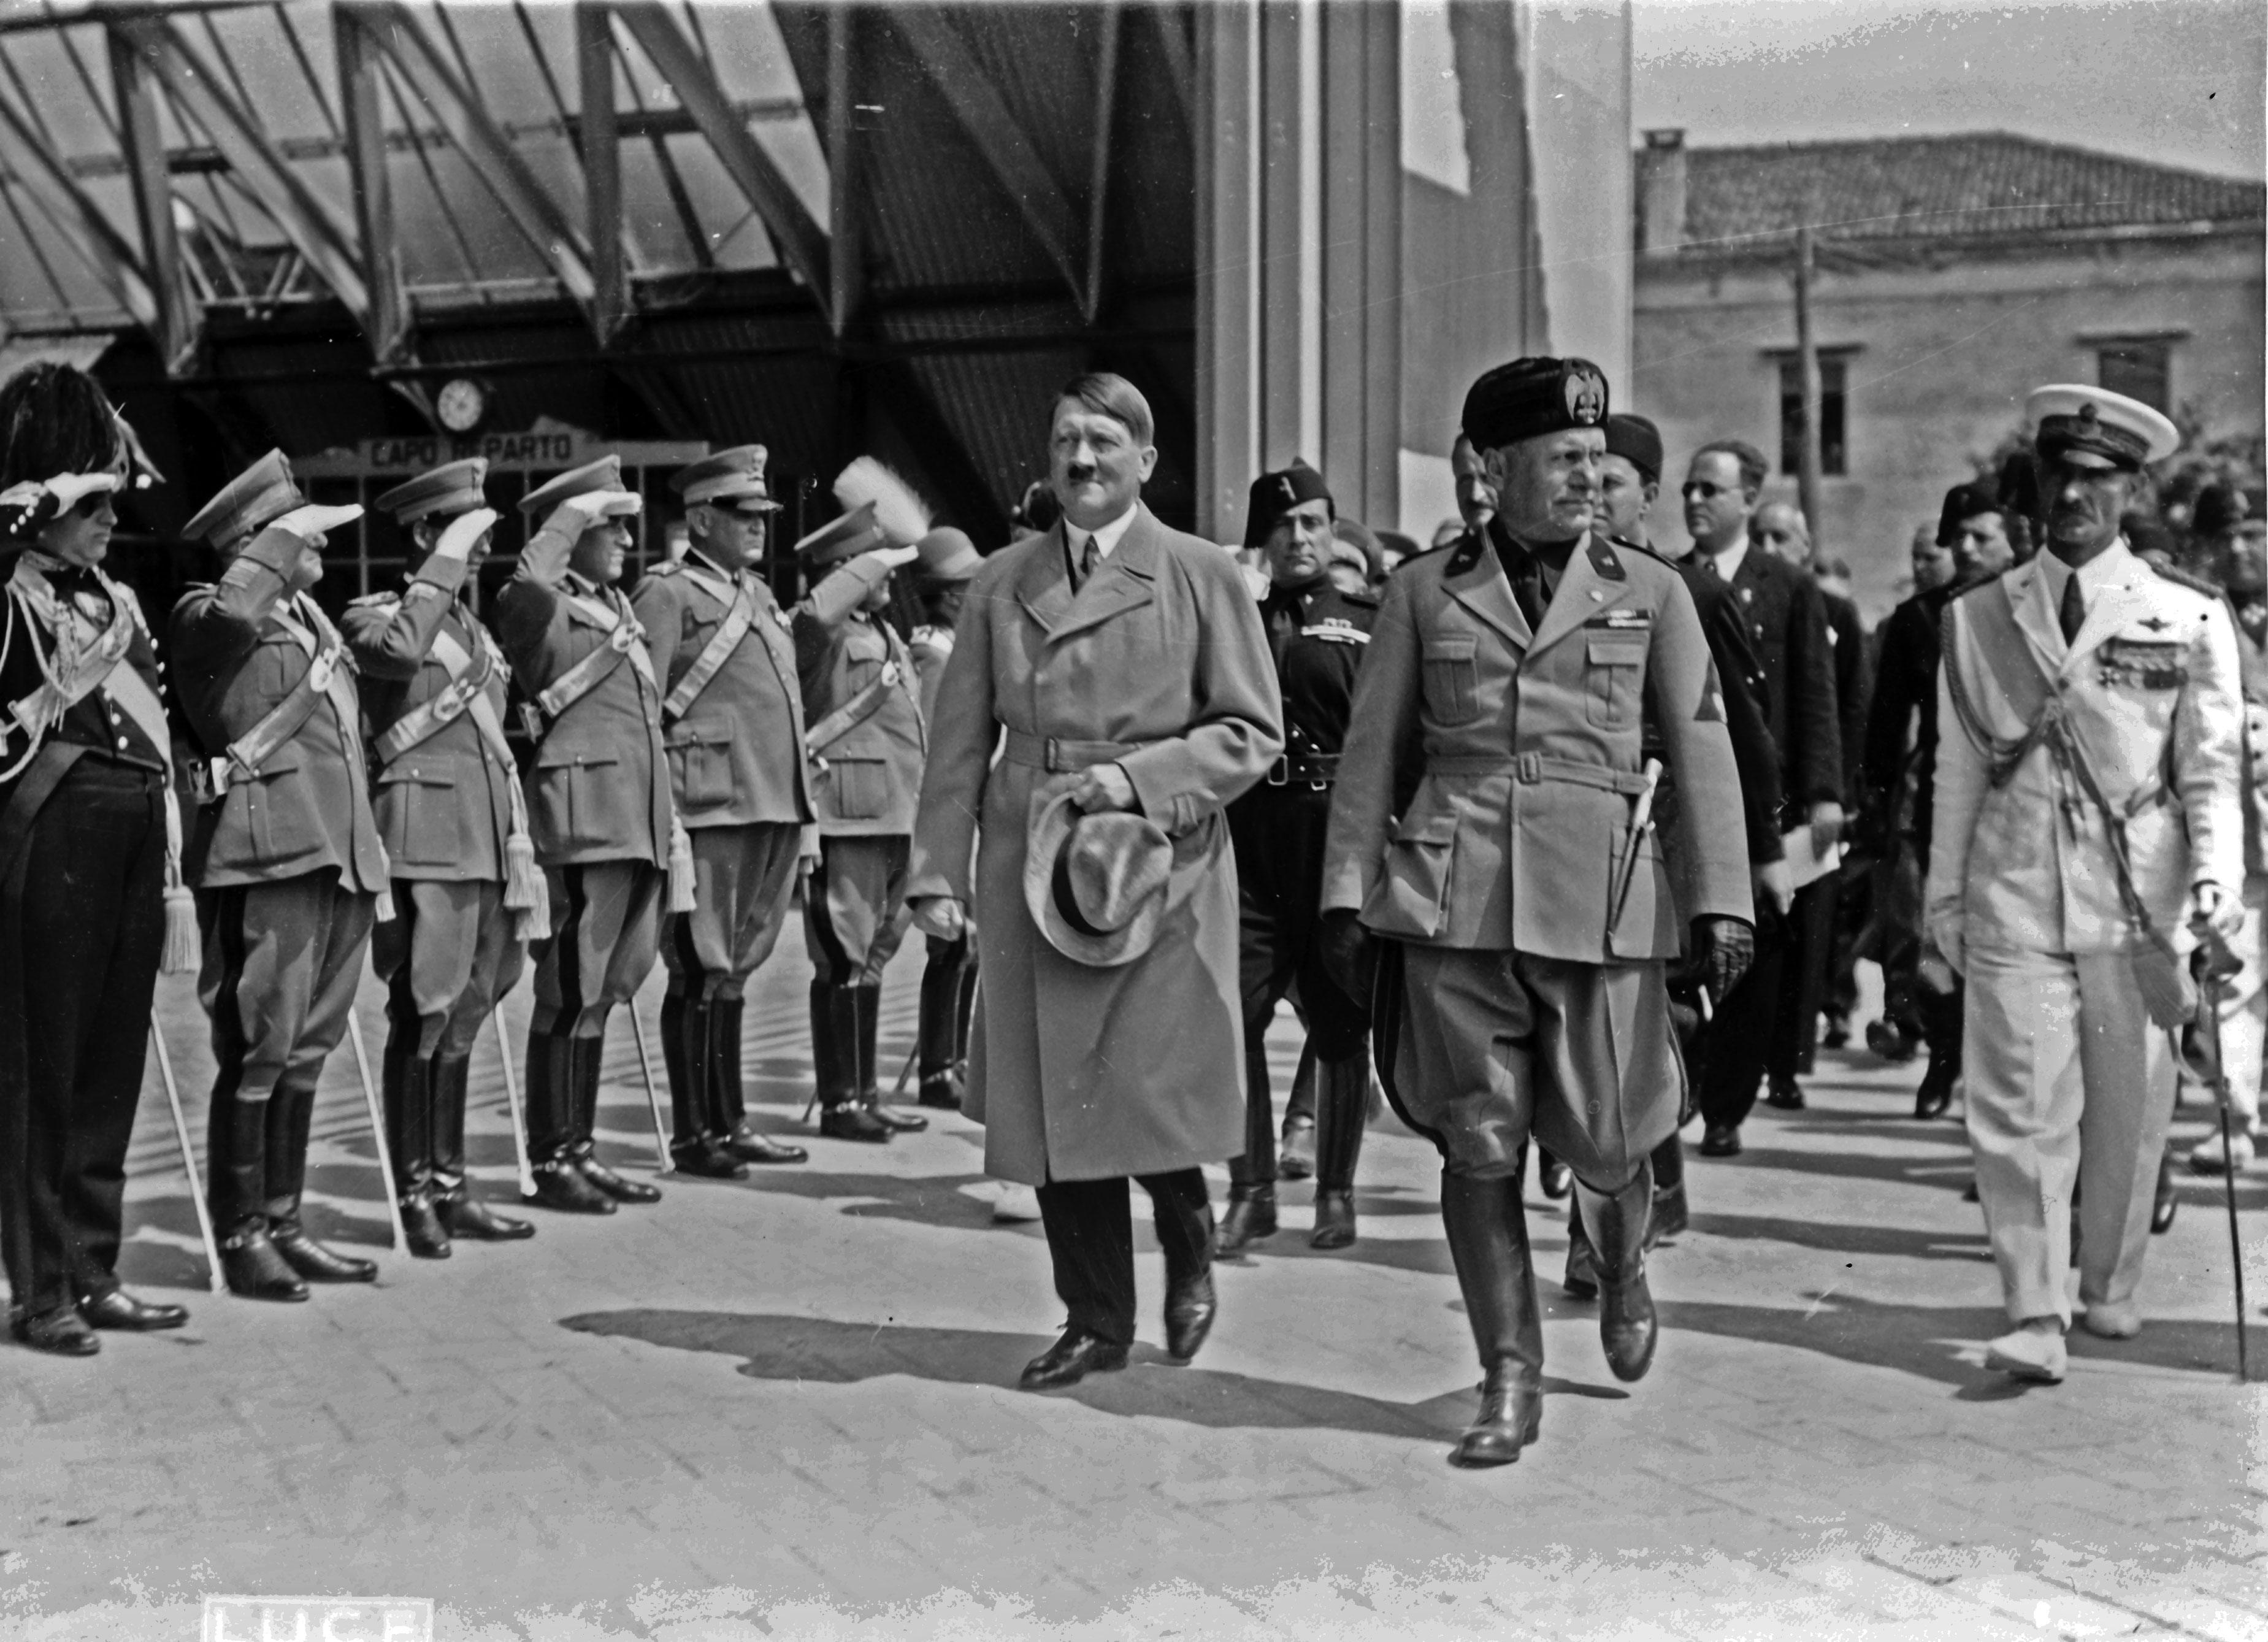 Adolf Hitler (left) and Benito Mussolini (right) in Venice, Italy, in June of 1934. Two years later, in 1936, the two dictators would form an Axis between their two countries, Germany and Italy.